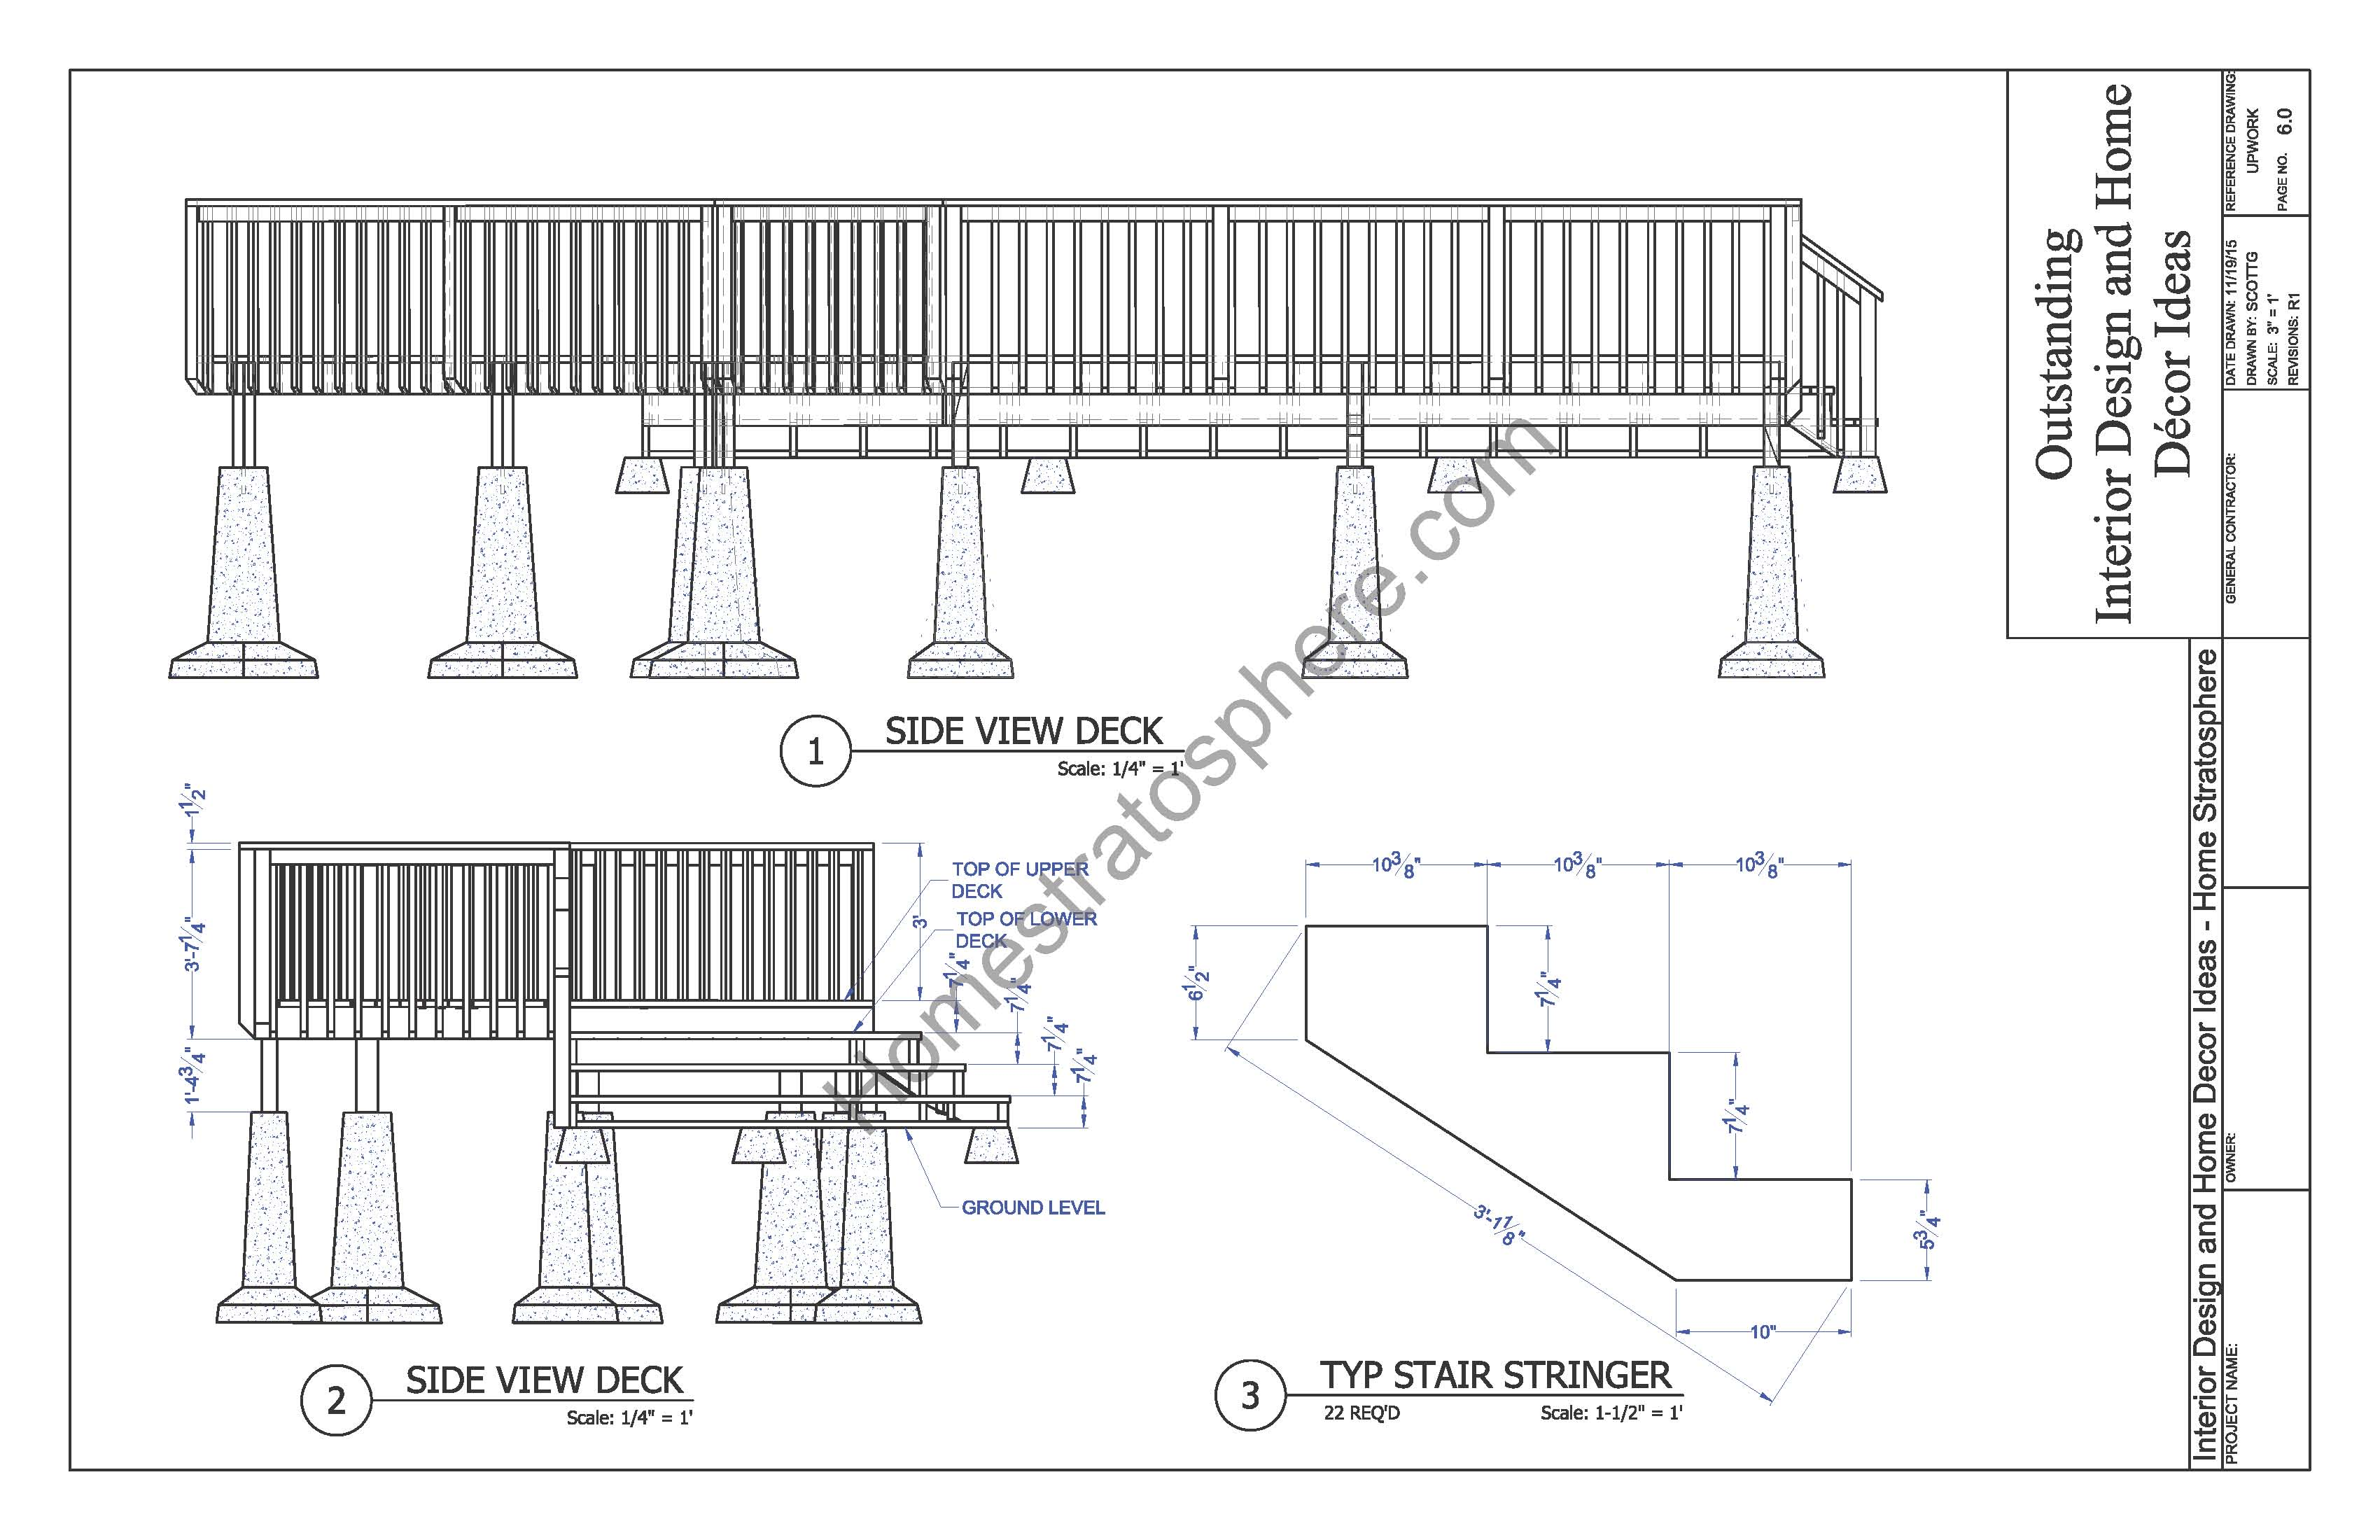 2 level deck plan blueprint free pdf download for House plans with decks